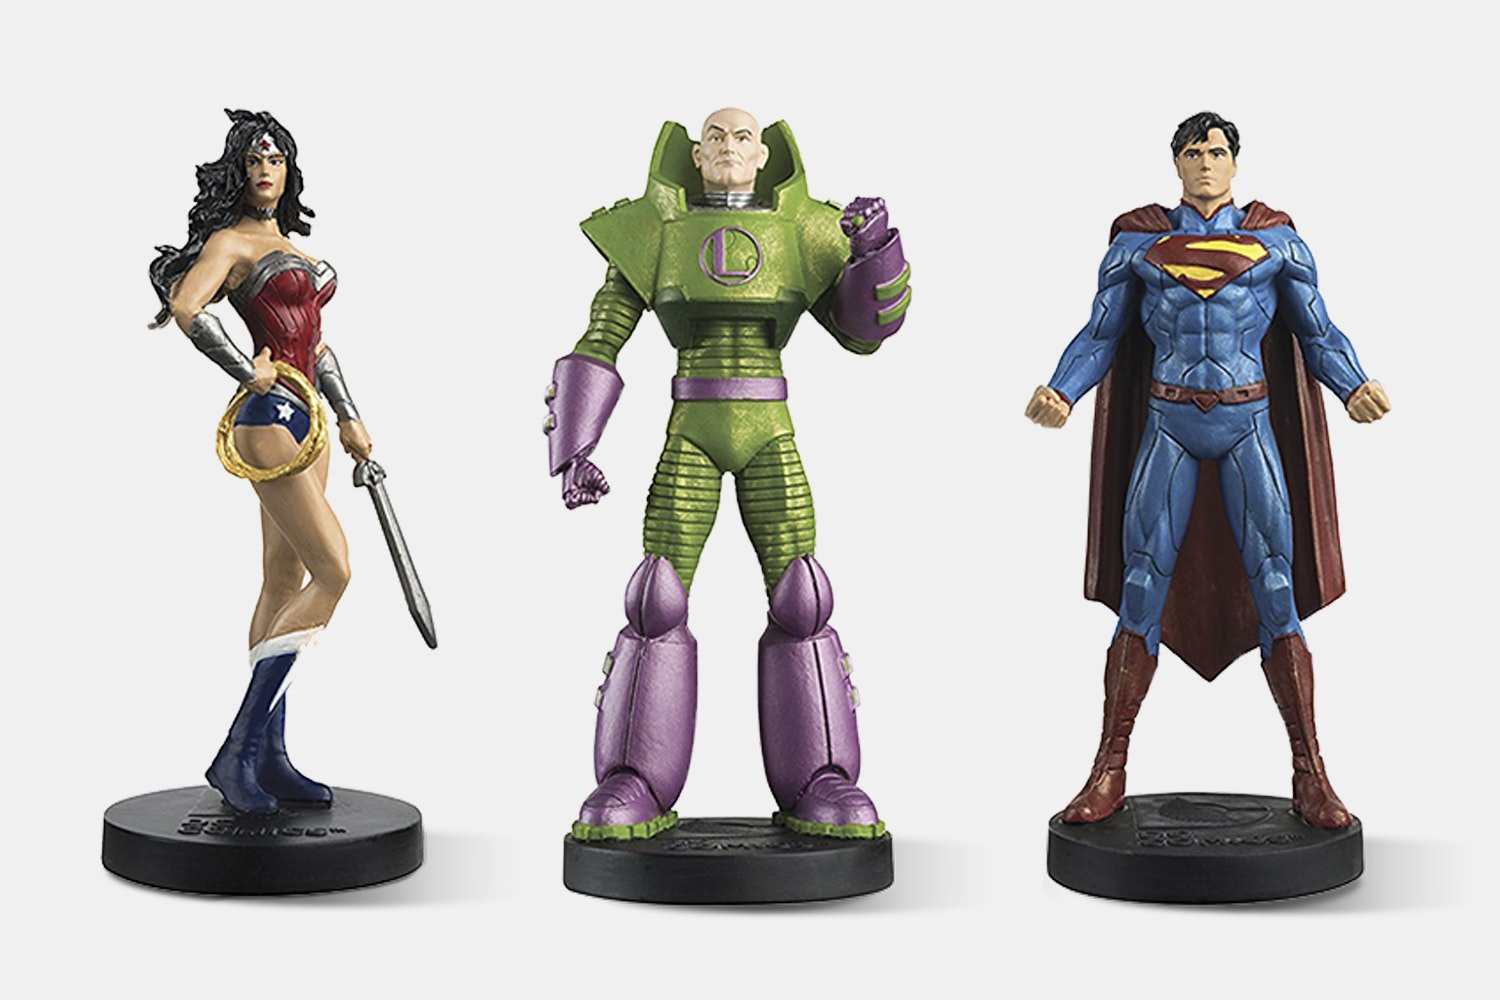 Box Set 1 (Superman, Wonder Woman, and Lex Luthor)